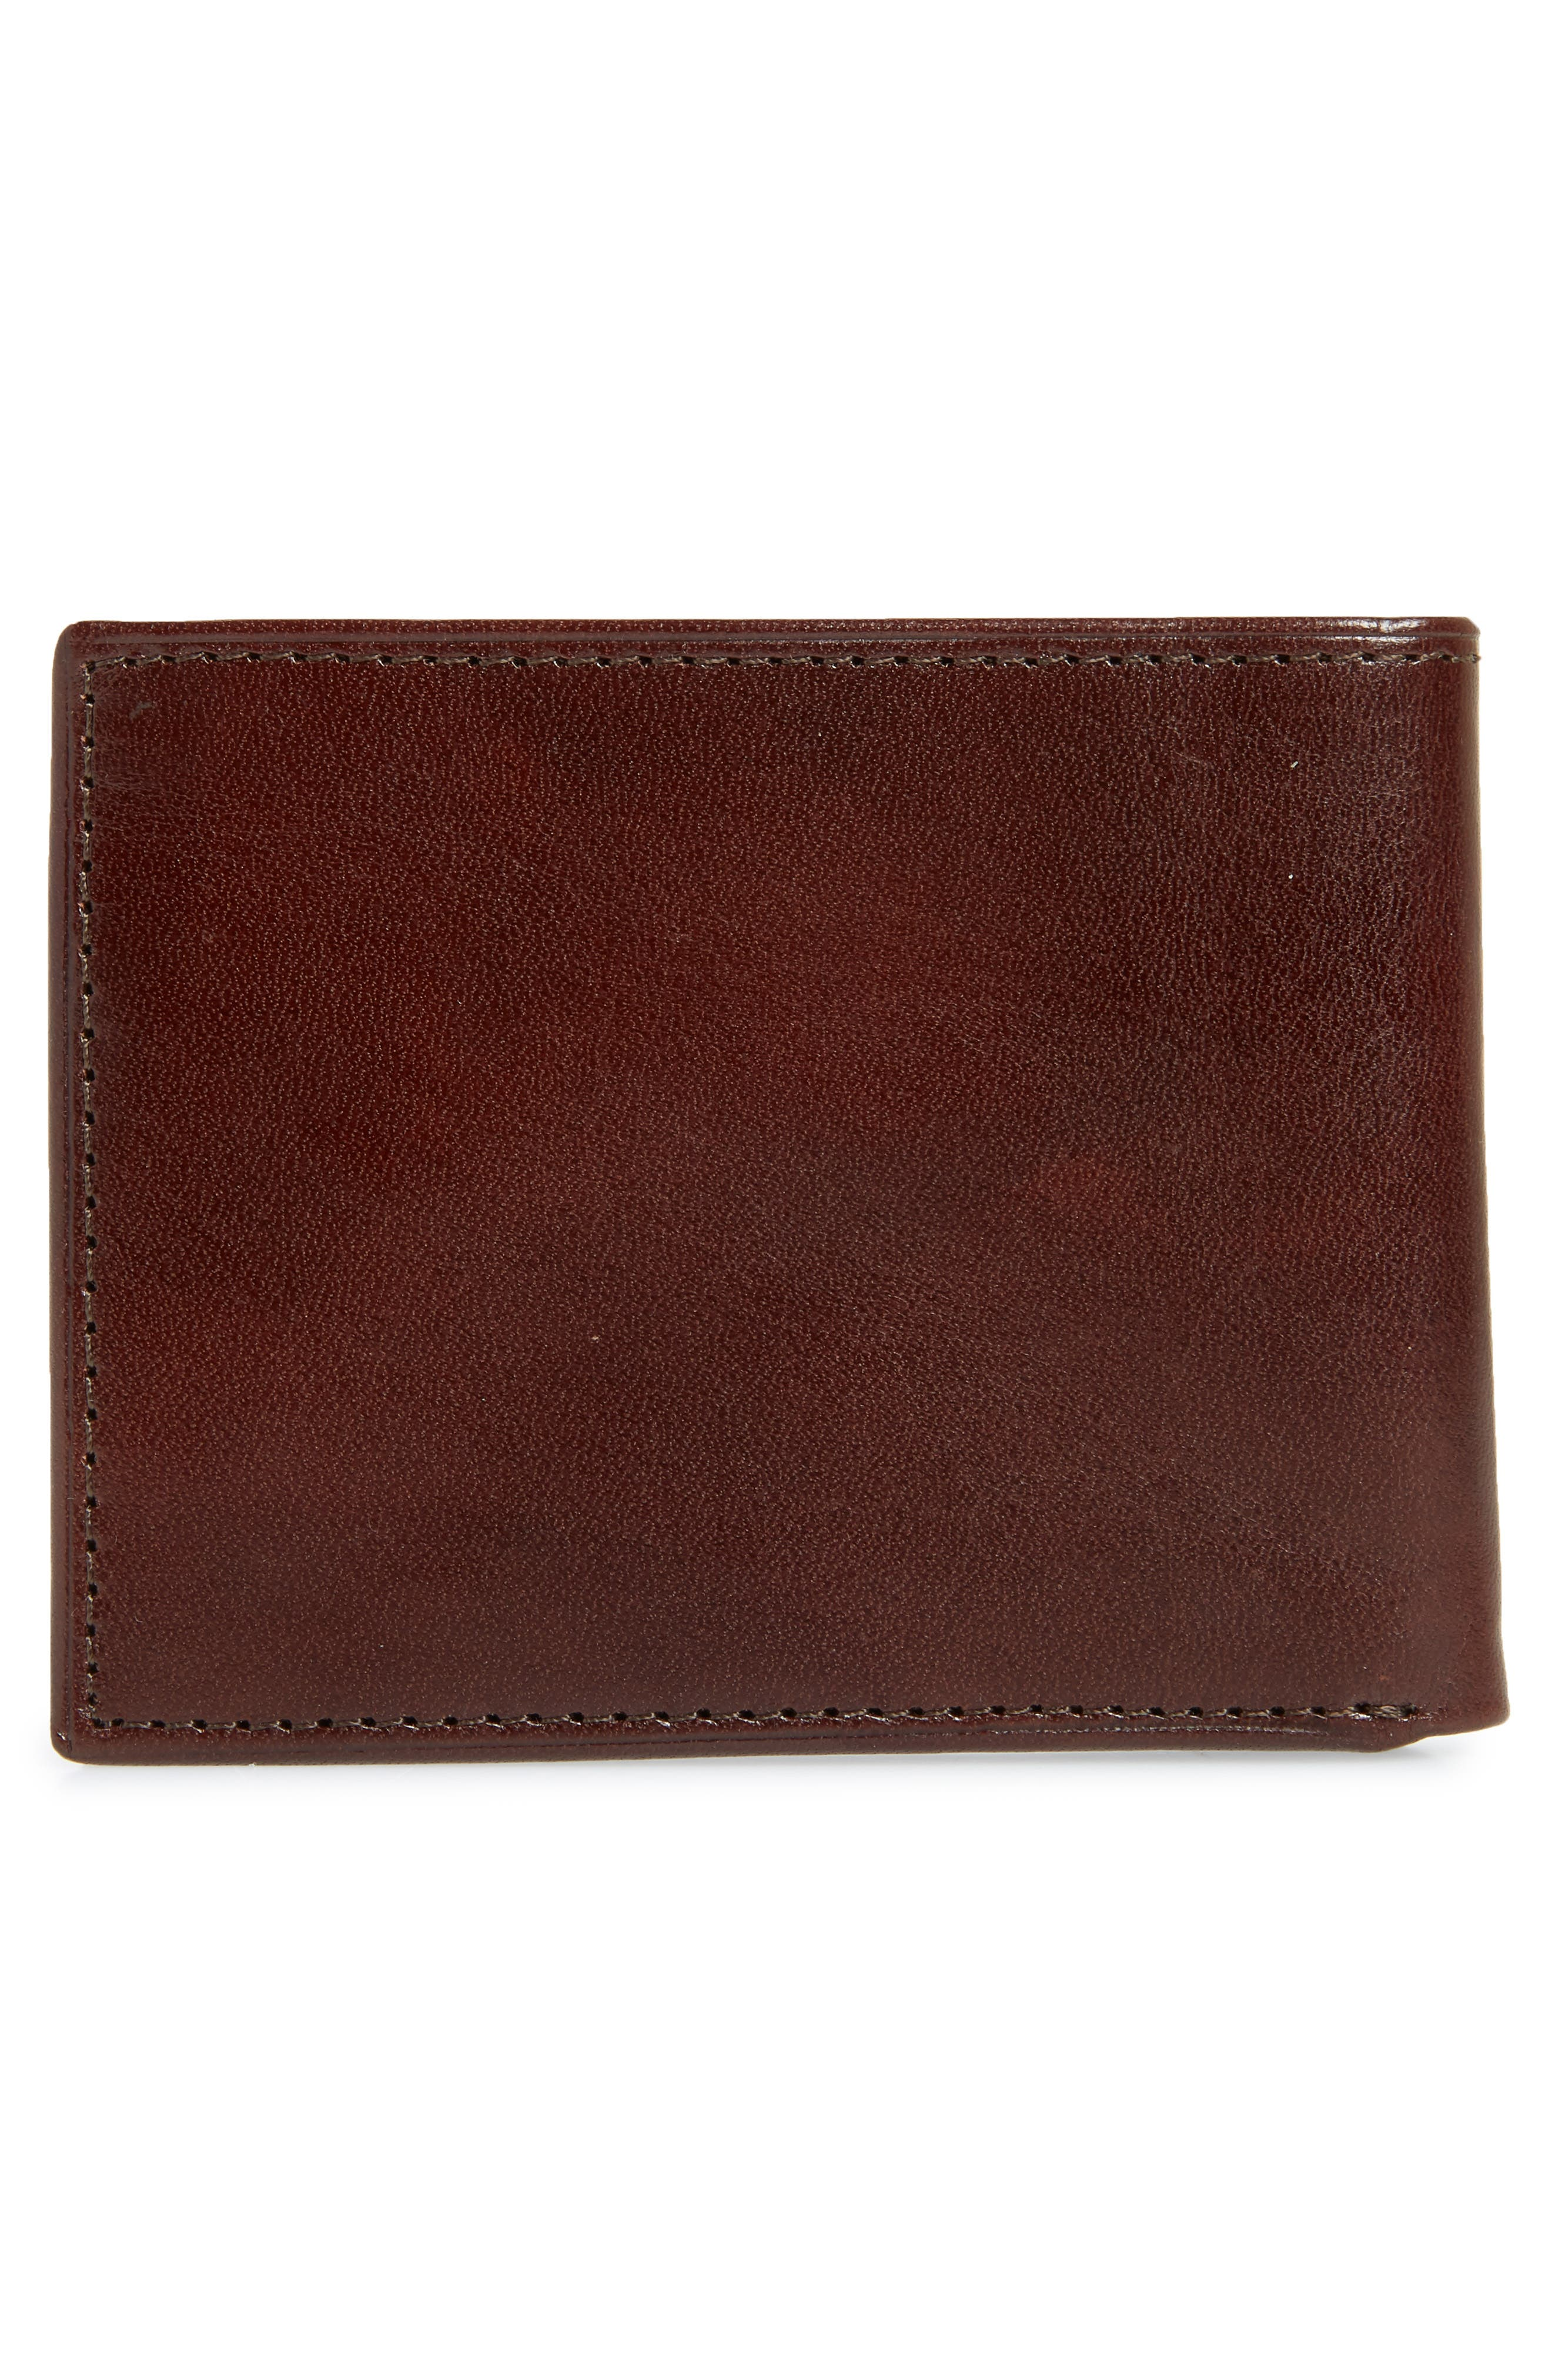 Slimfold Leather Wallet,                             Alternate thumbnail 3, color,                             200